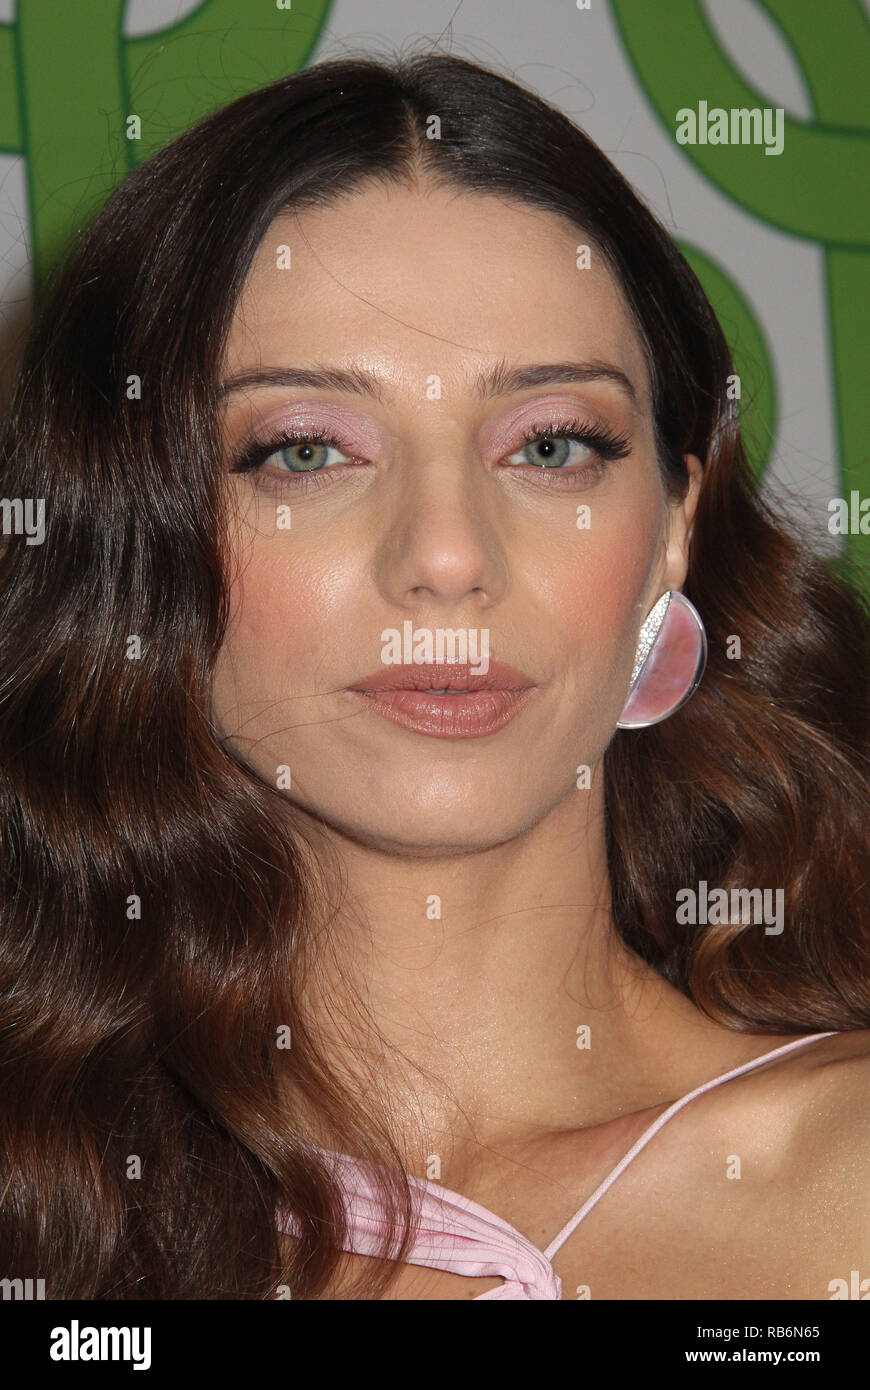 Angela Sarafyan  01/06/2019 The 76th Annual Golden Globe Awards HBO After Party held at the Circa 55 Restaurant at The Beverly Hilton in Beverly Hills, CA   Photo: Cronos/Hollywood News Stock Photo